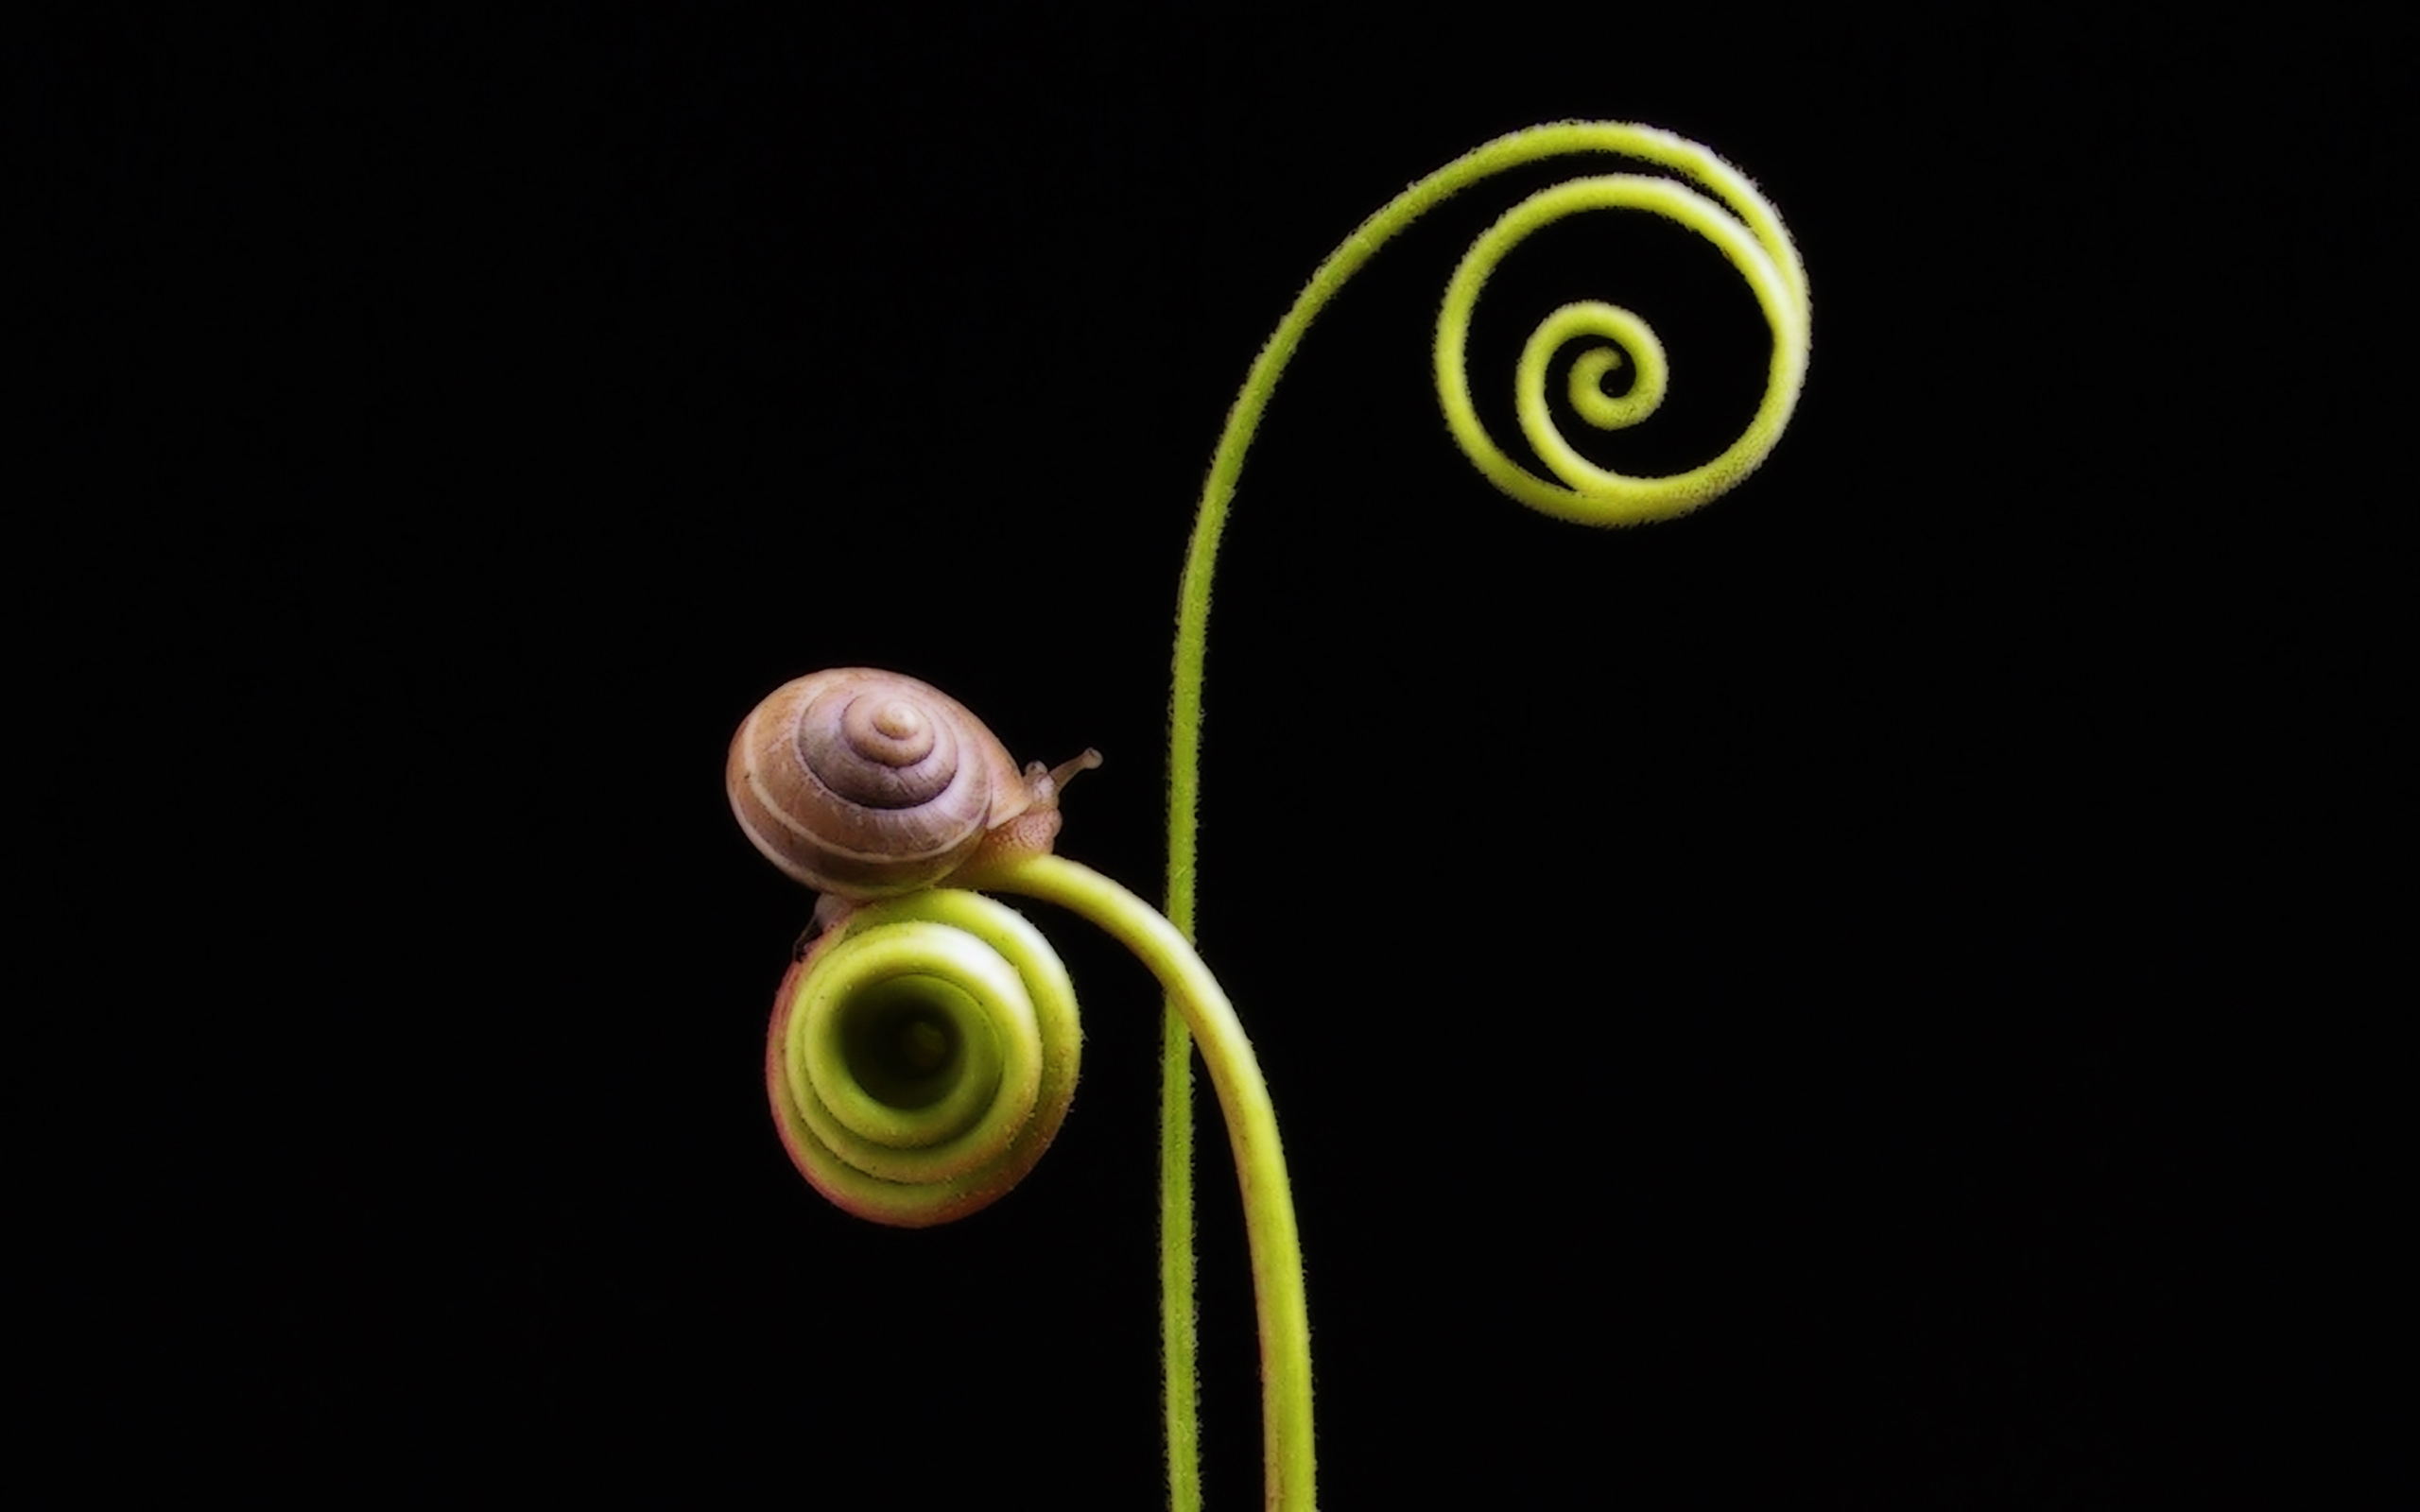 Cute Wallpapers November 36 Excellent Hd Snail Wallpapers